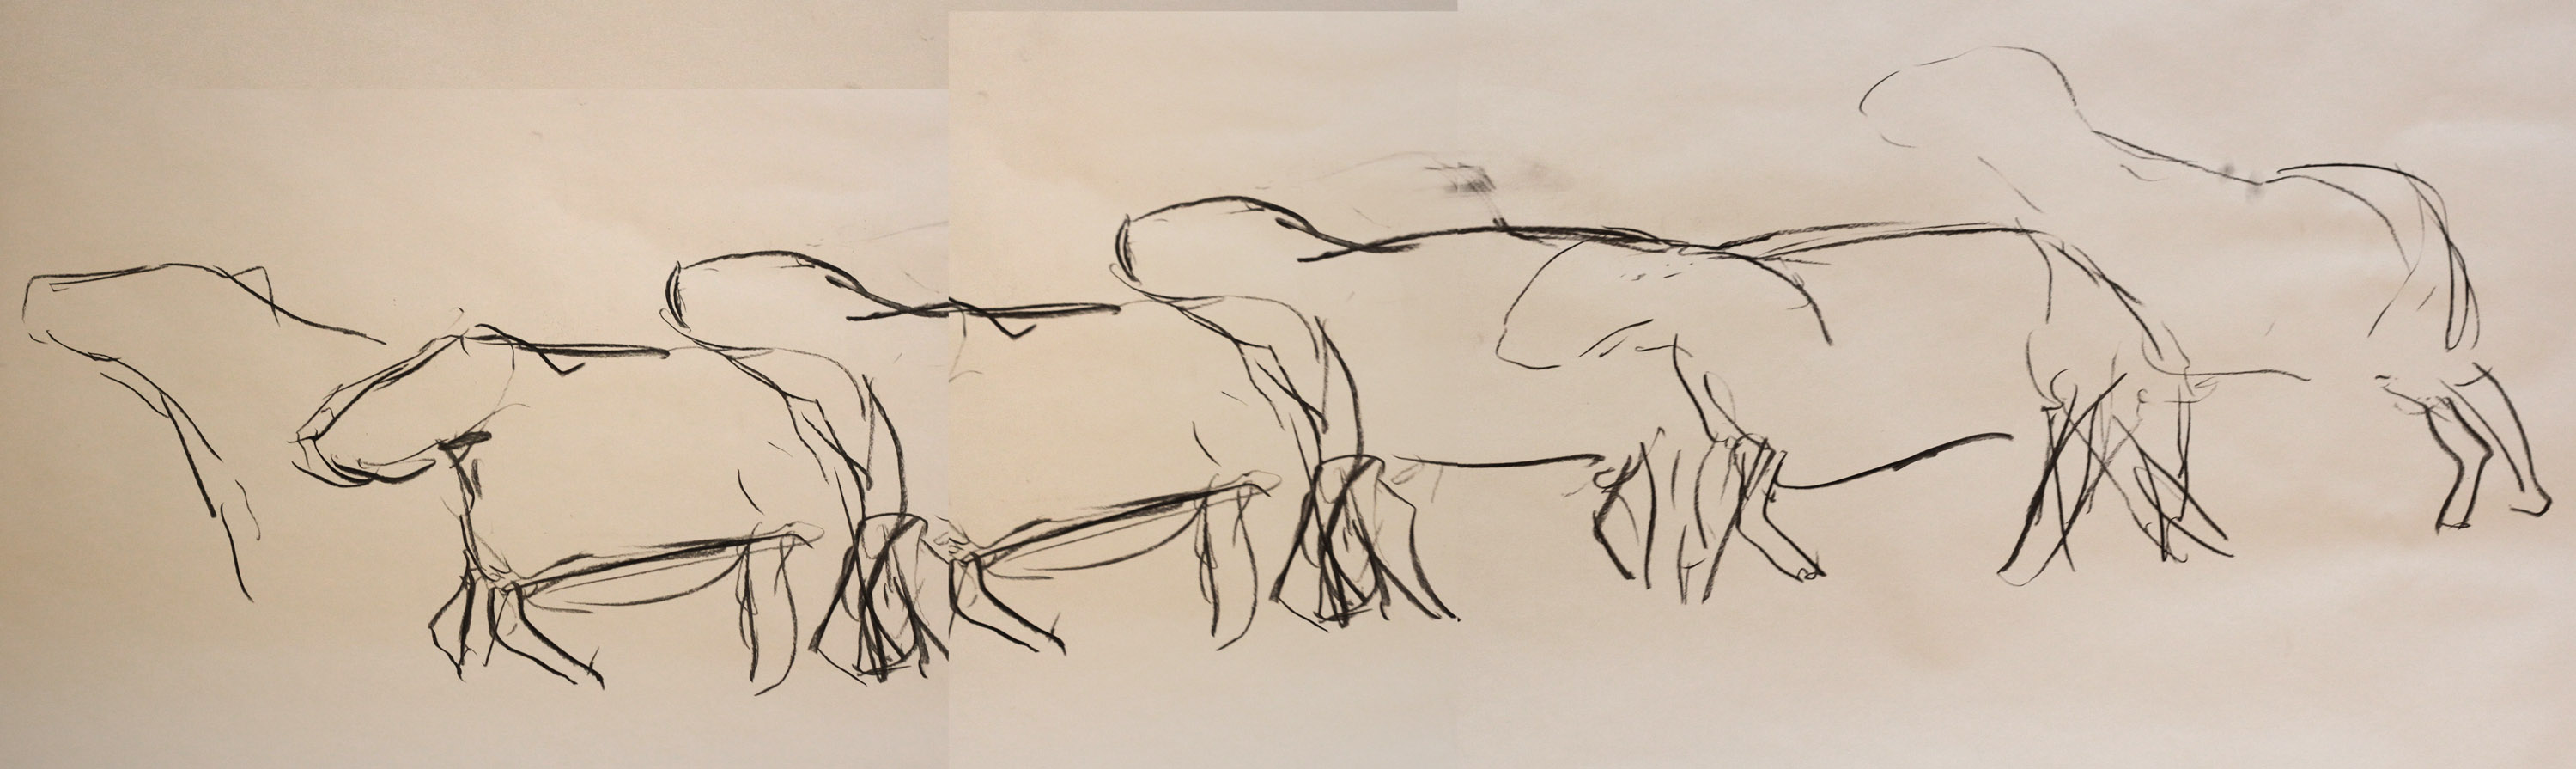 a long charcoal drawing that shows five stages of movement of a sheep with lameness, drawn sequentially and in loose, traced outline